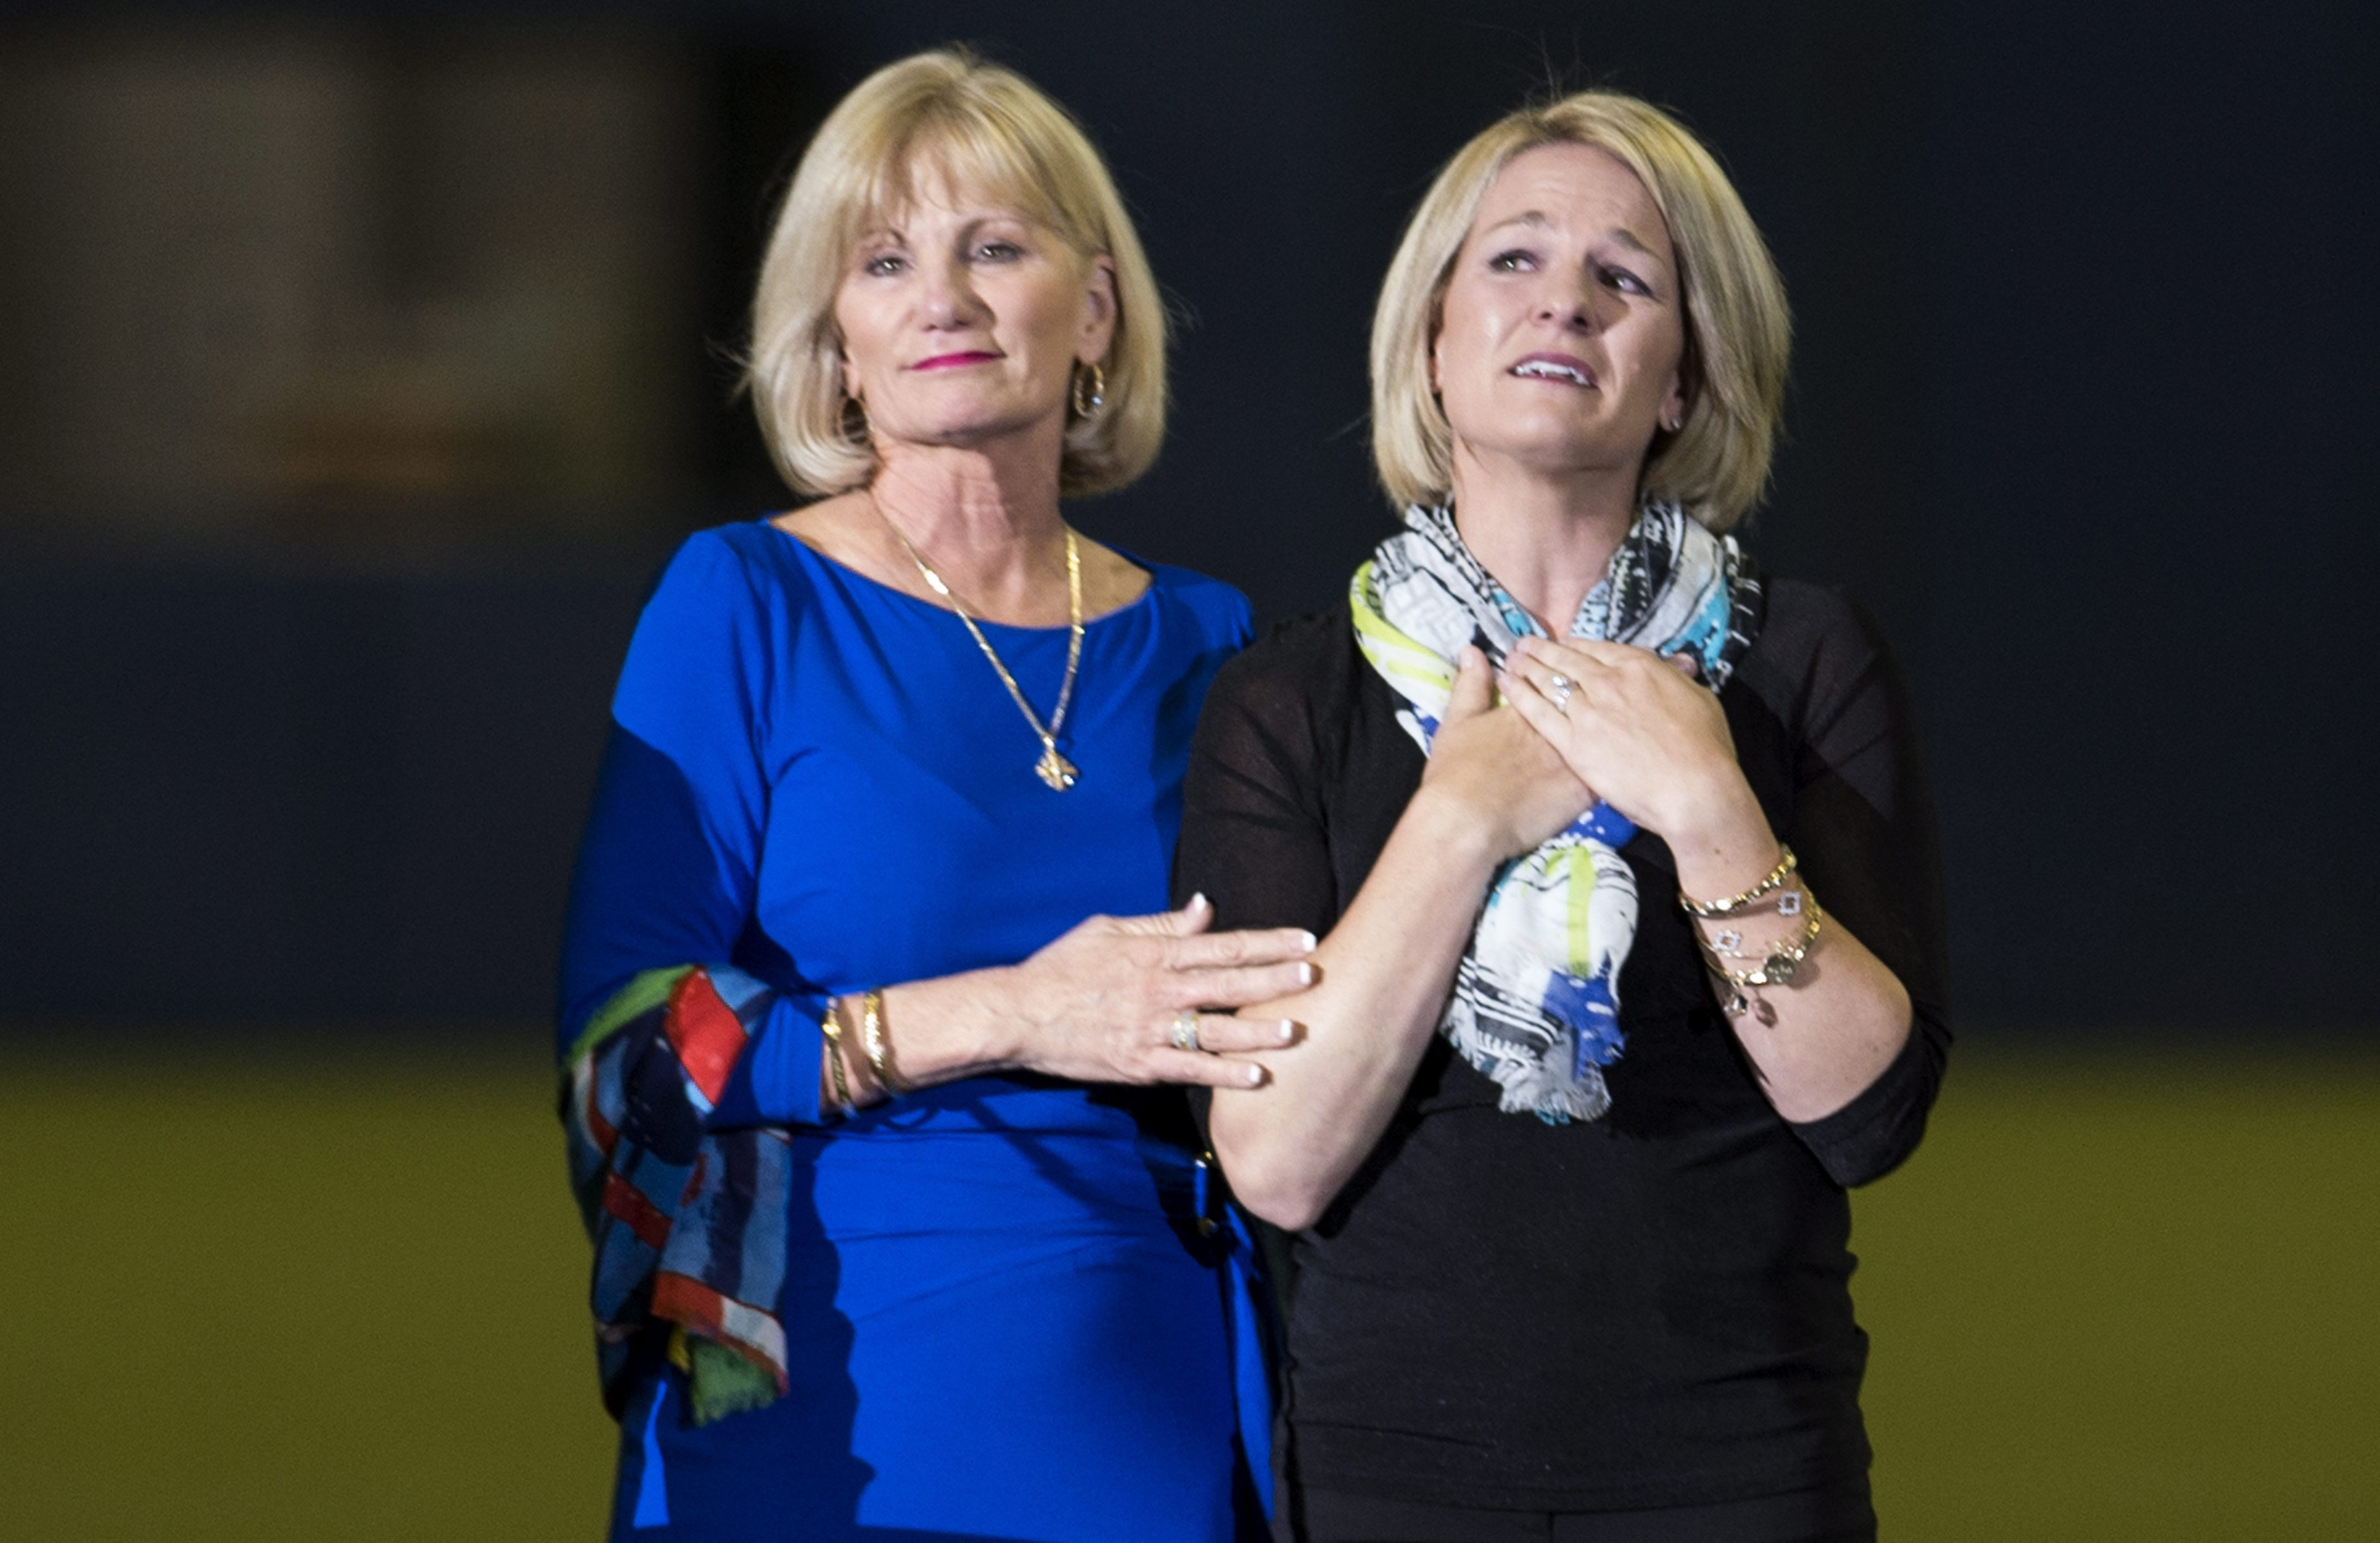 Sandy Carter, left, wife of former Montreal Expos Gary Carter, and her daughter Kimmy acknowledge applauds from the crowd during a ceremony prior to a pre-season game between the Toronto Blue Jays and the New York Mets Friday, March 28, 2014 in Montreal